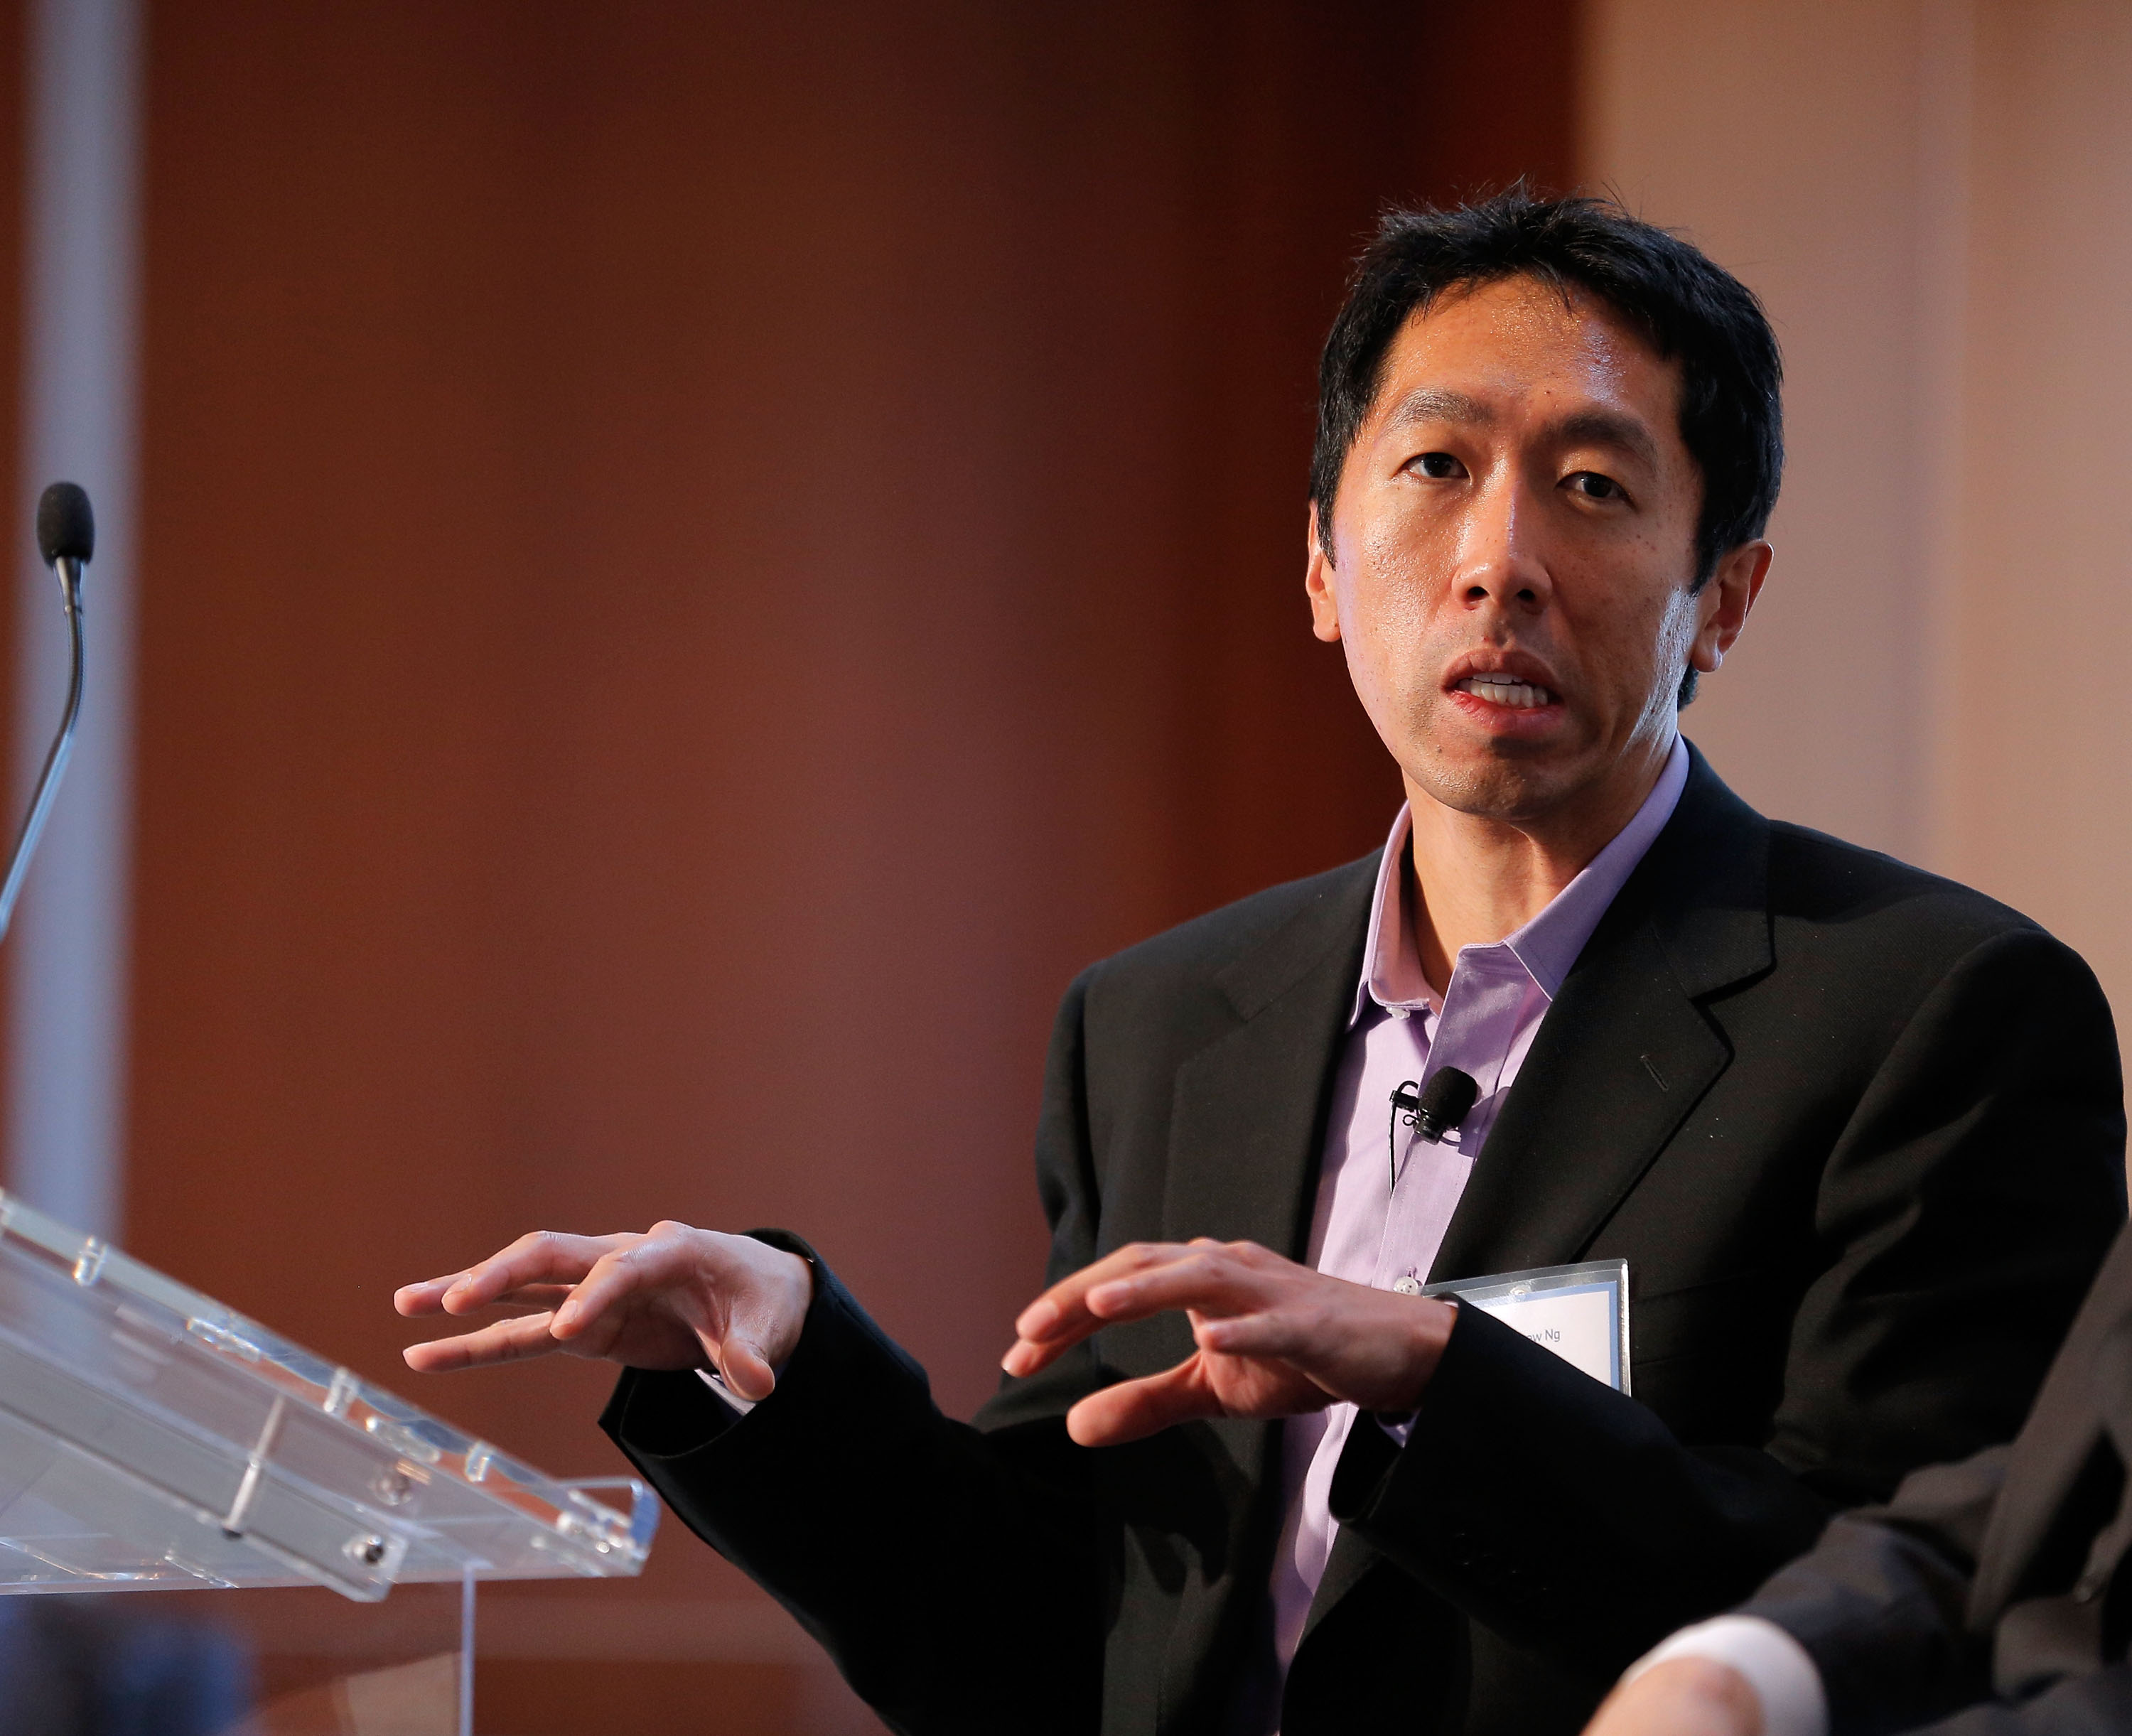 Associate Professor of Computer Science at Stanford University Andrew Ng speaks during the  Changing Landscapes: From the Digital Classroom to the Global Campus  panal during the TIME Summit On Higher Education on October 18, 2012 in New York City.